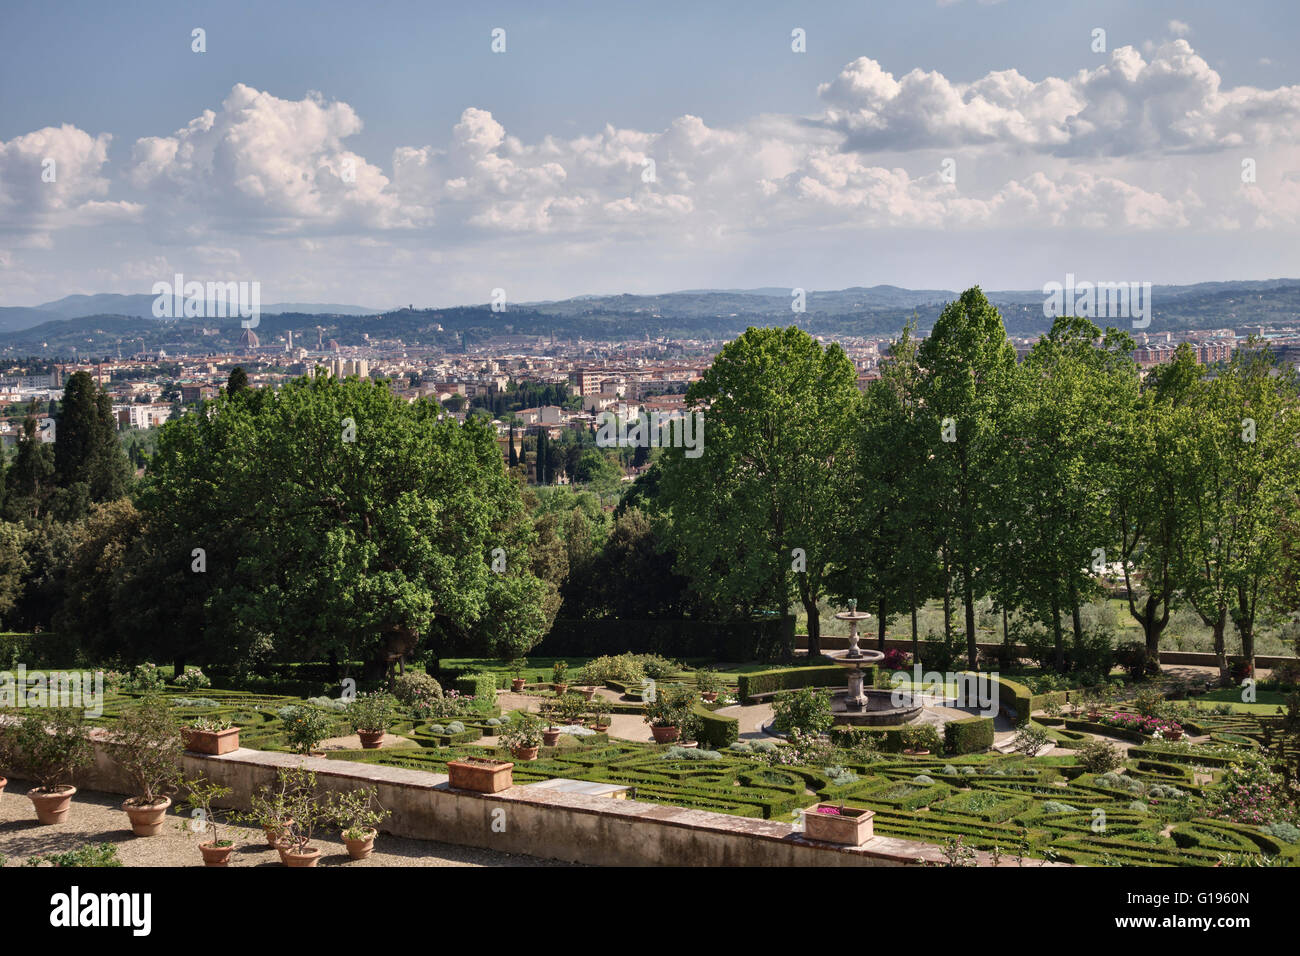 Florence, Italy. Medici Villa della Petraia (La Petraia). The formal terraced gardens overlooking the city - Stock Image